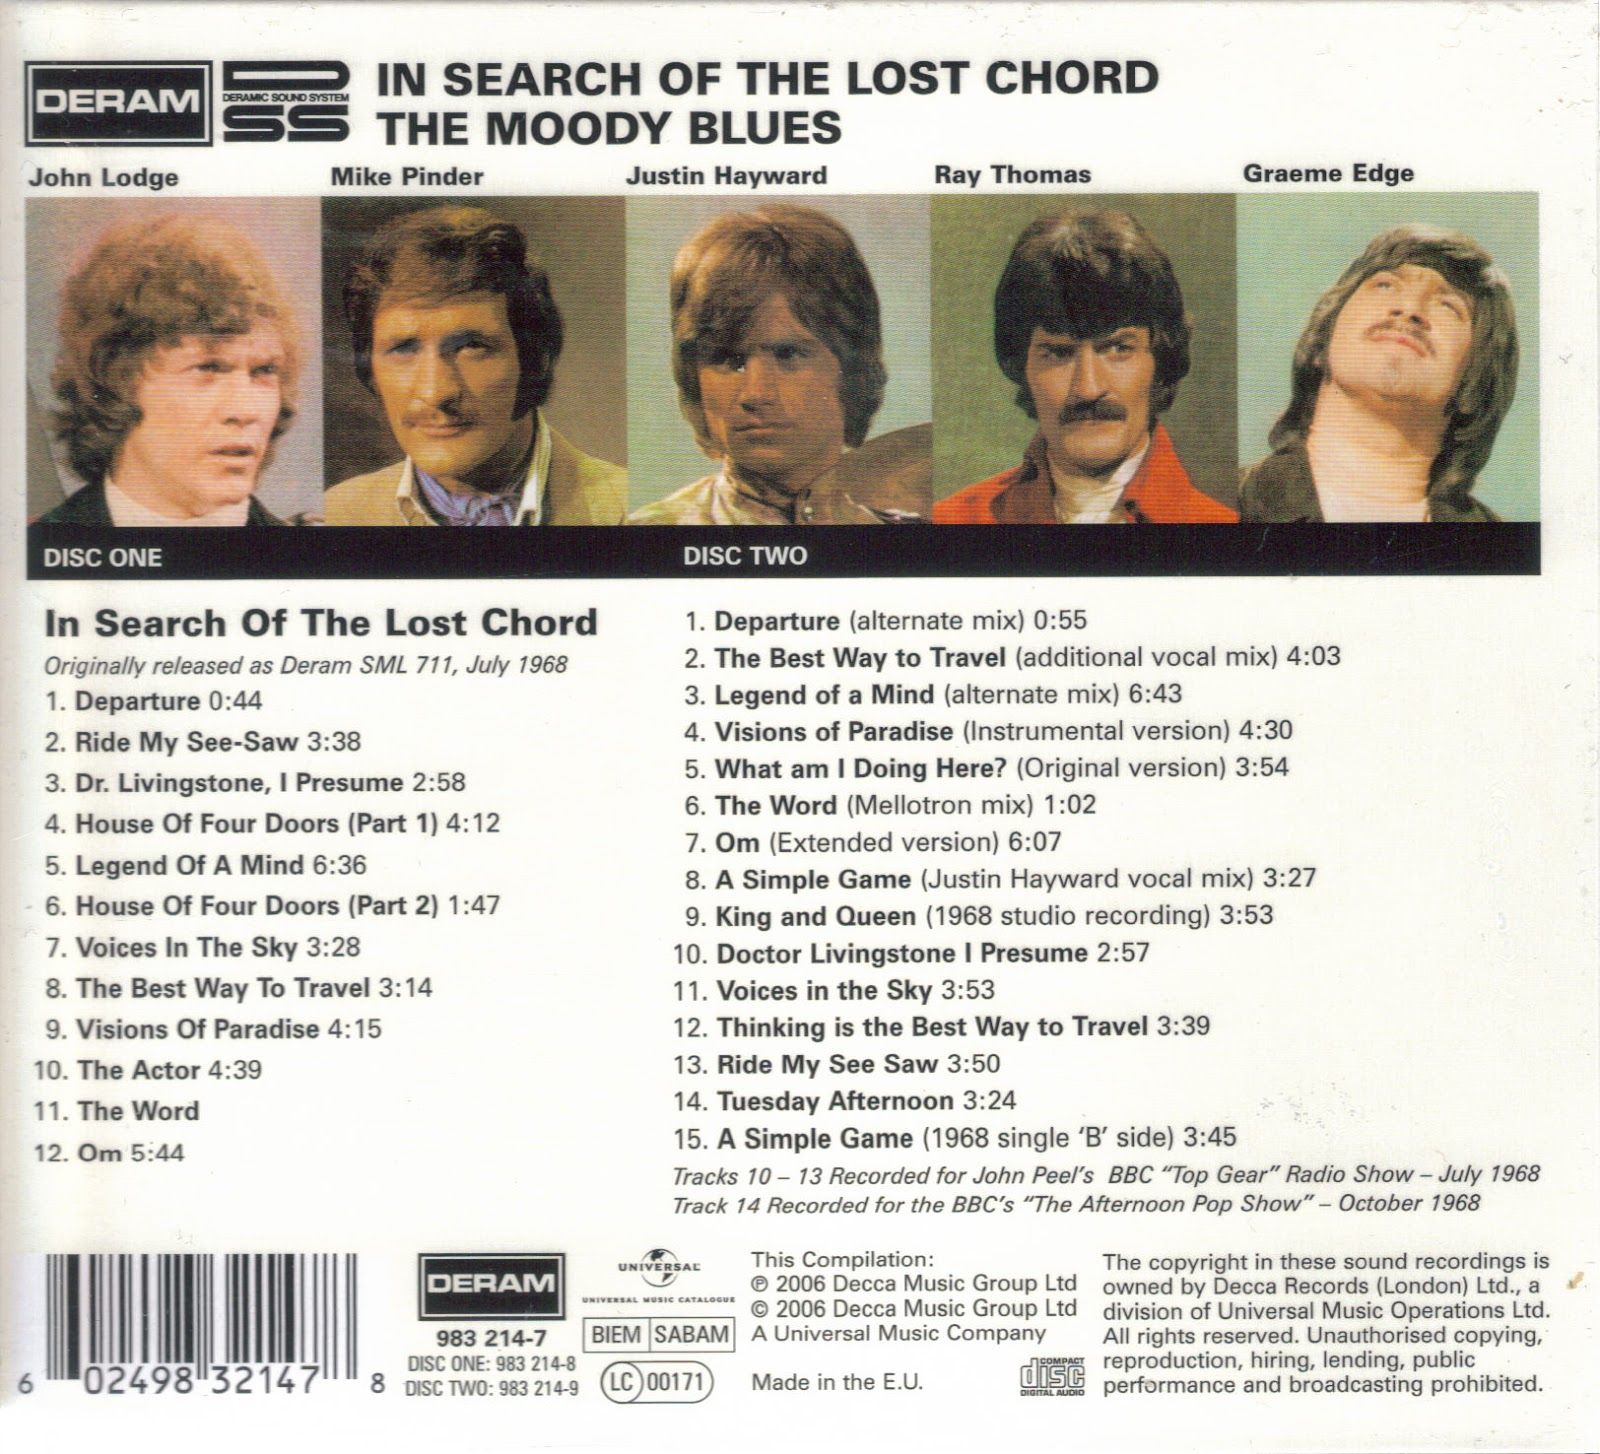 MIJAS: THE MOODY BLUES -In Search of the Lost Chord [Deluxe